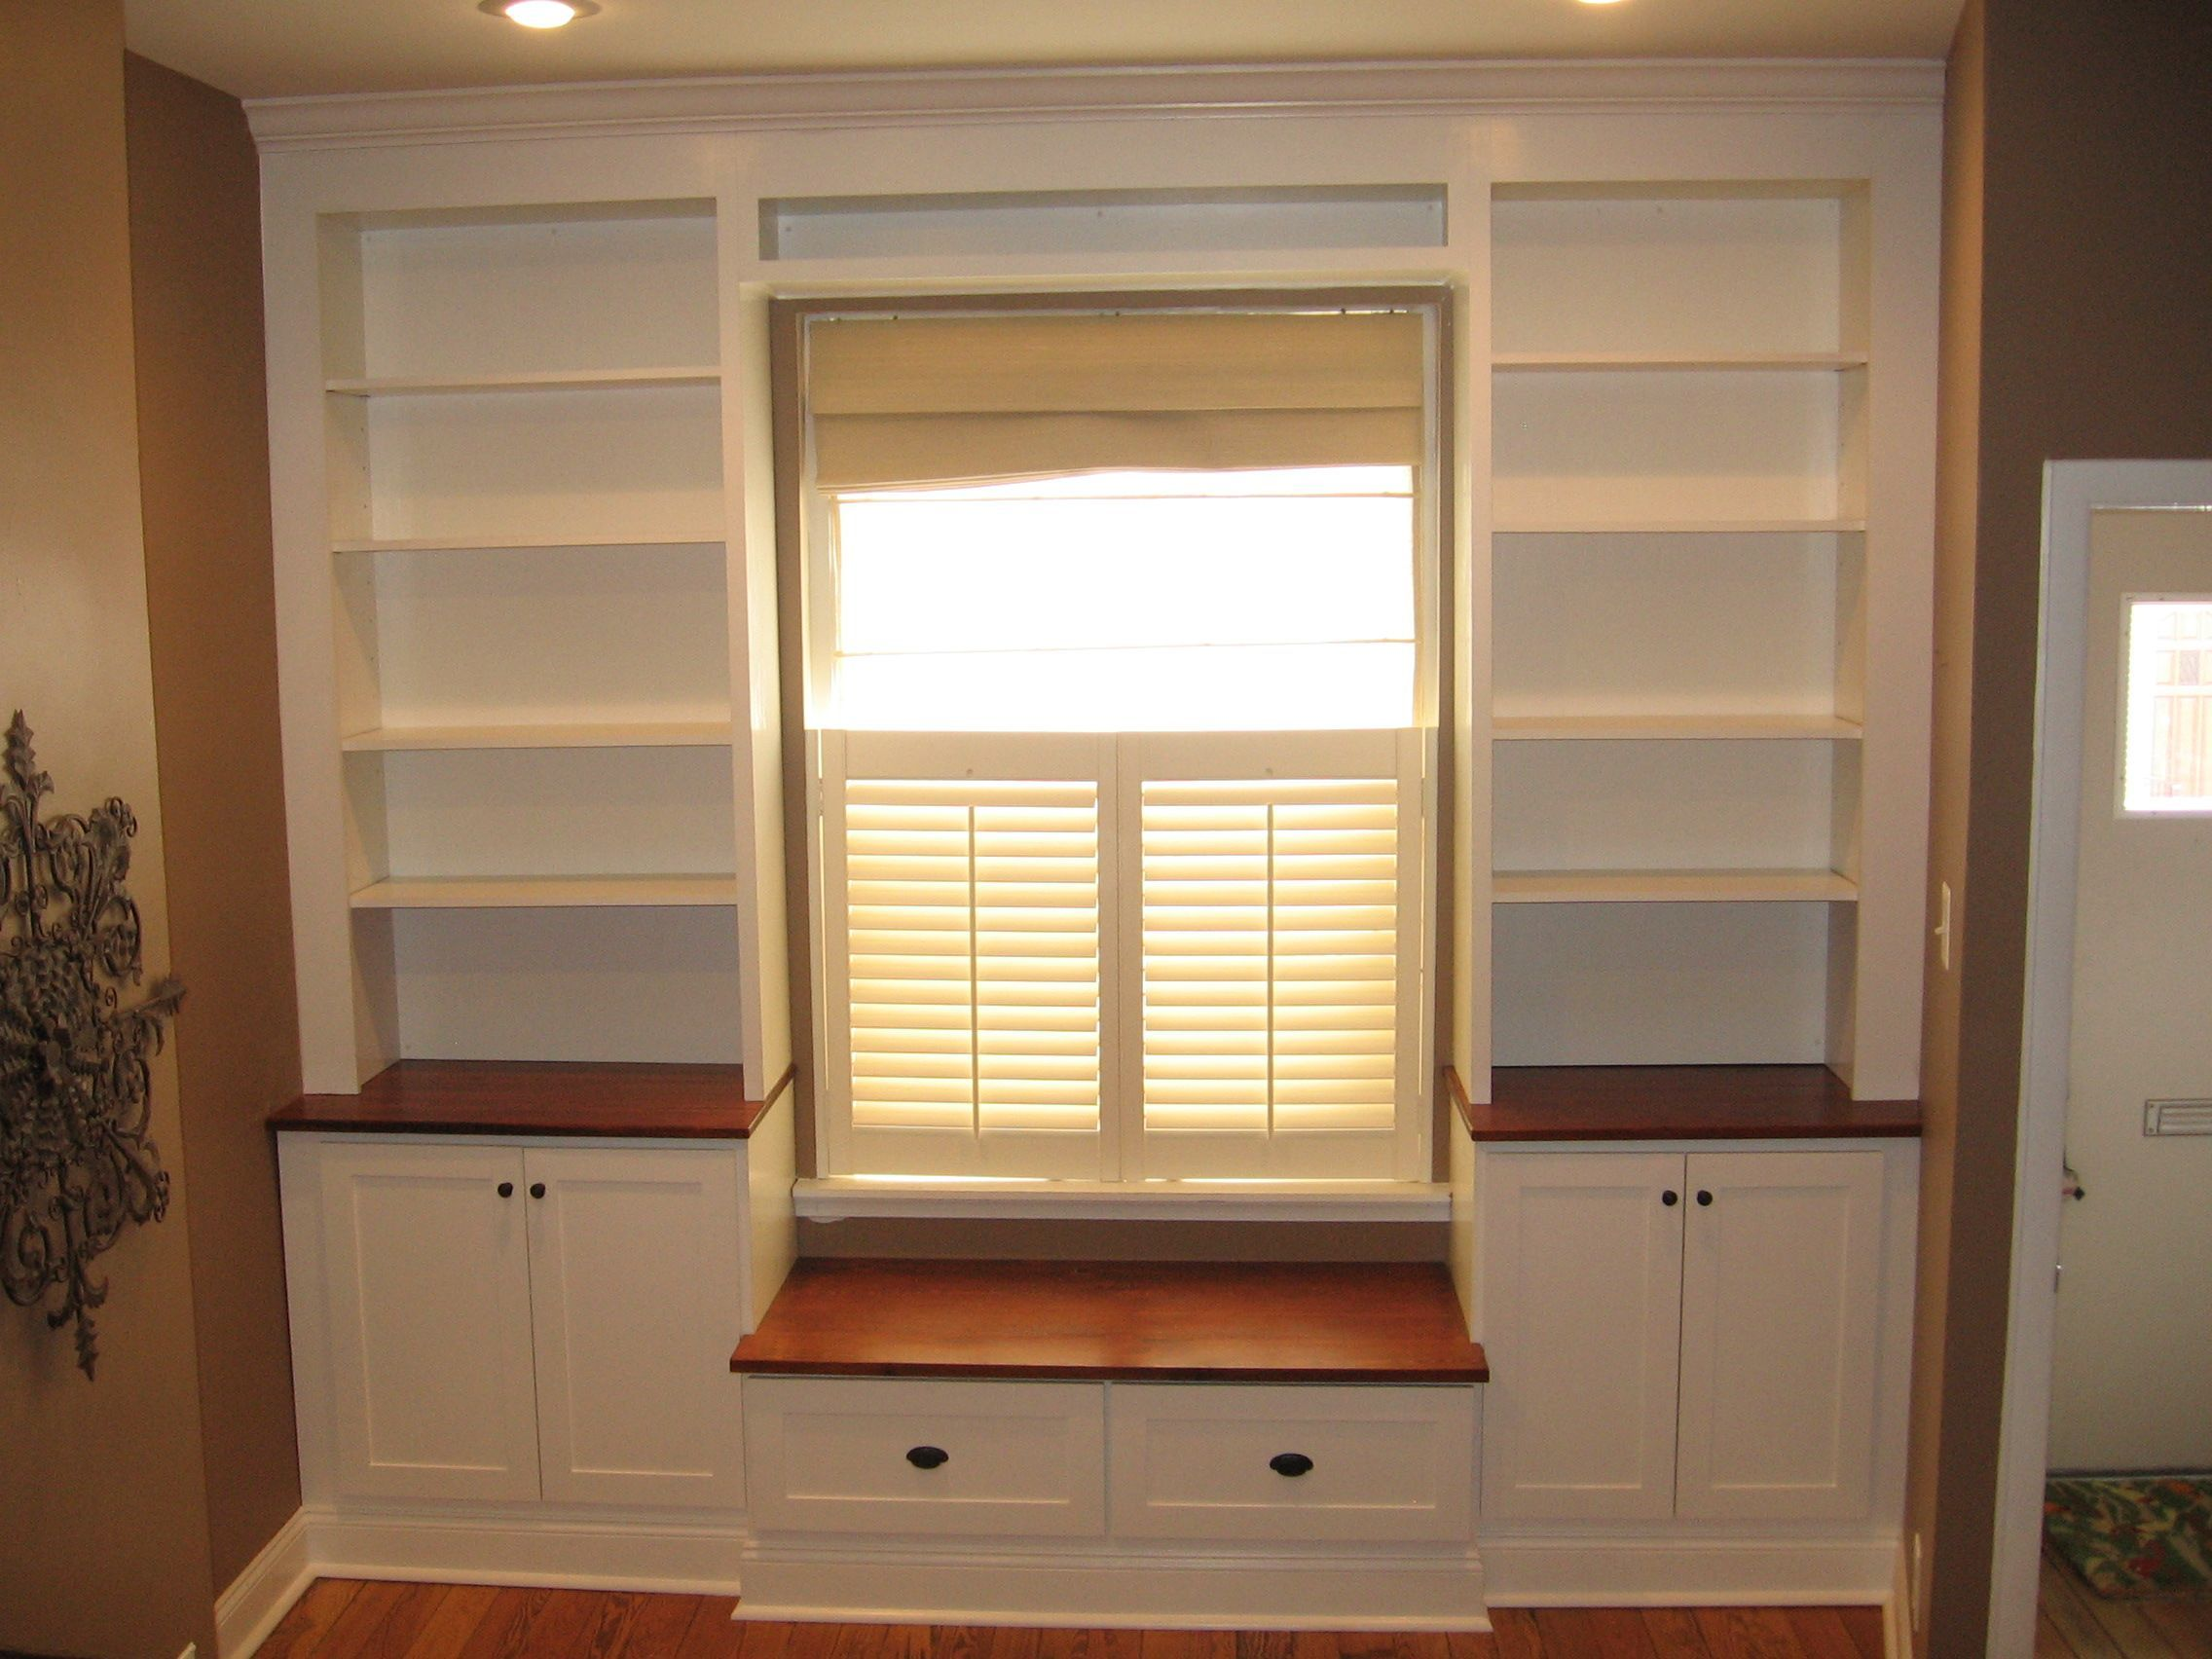 Window seat storage camps pinterest - Built In Around Window With Bench Seat Create Toy Storage In Bench To Put